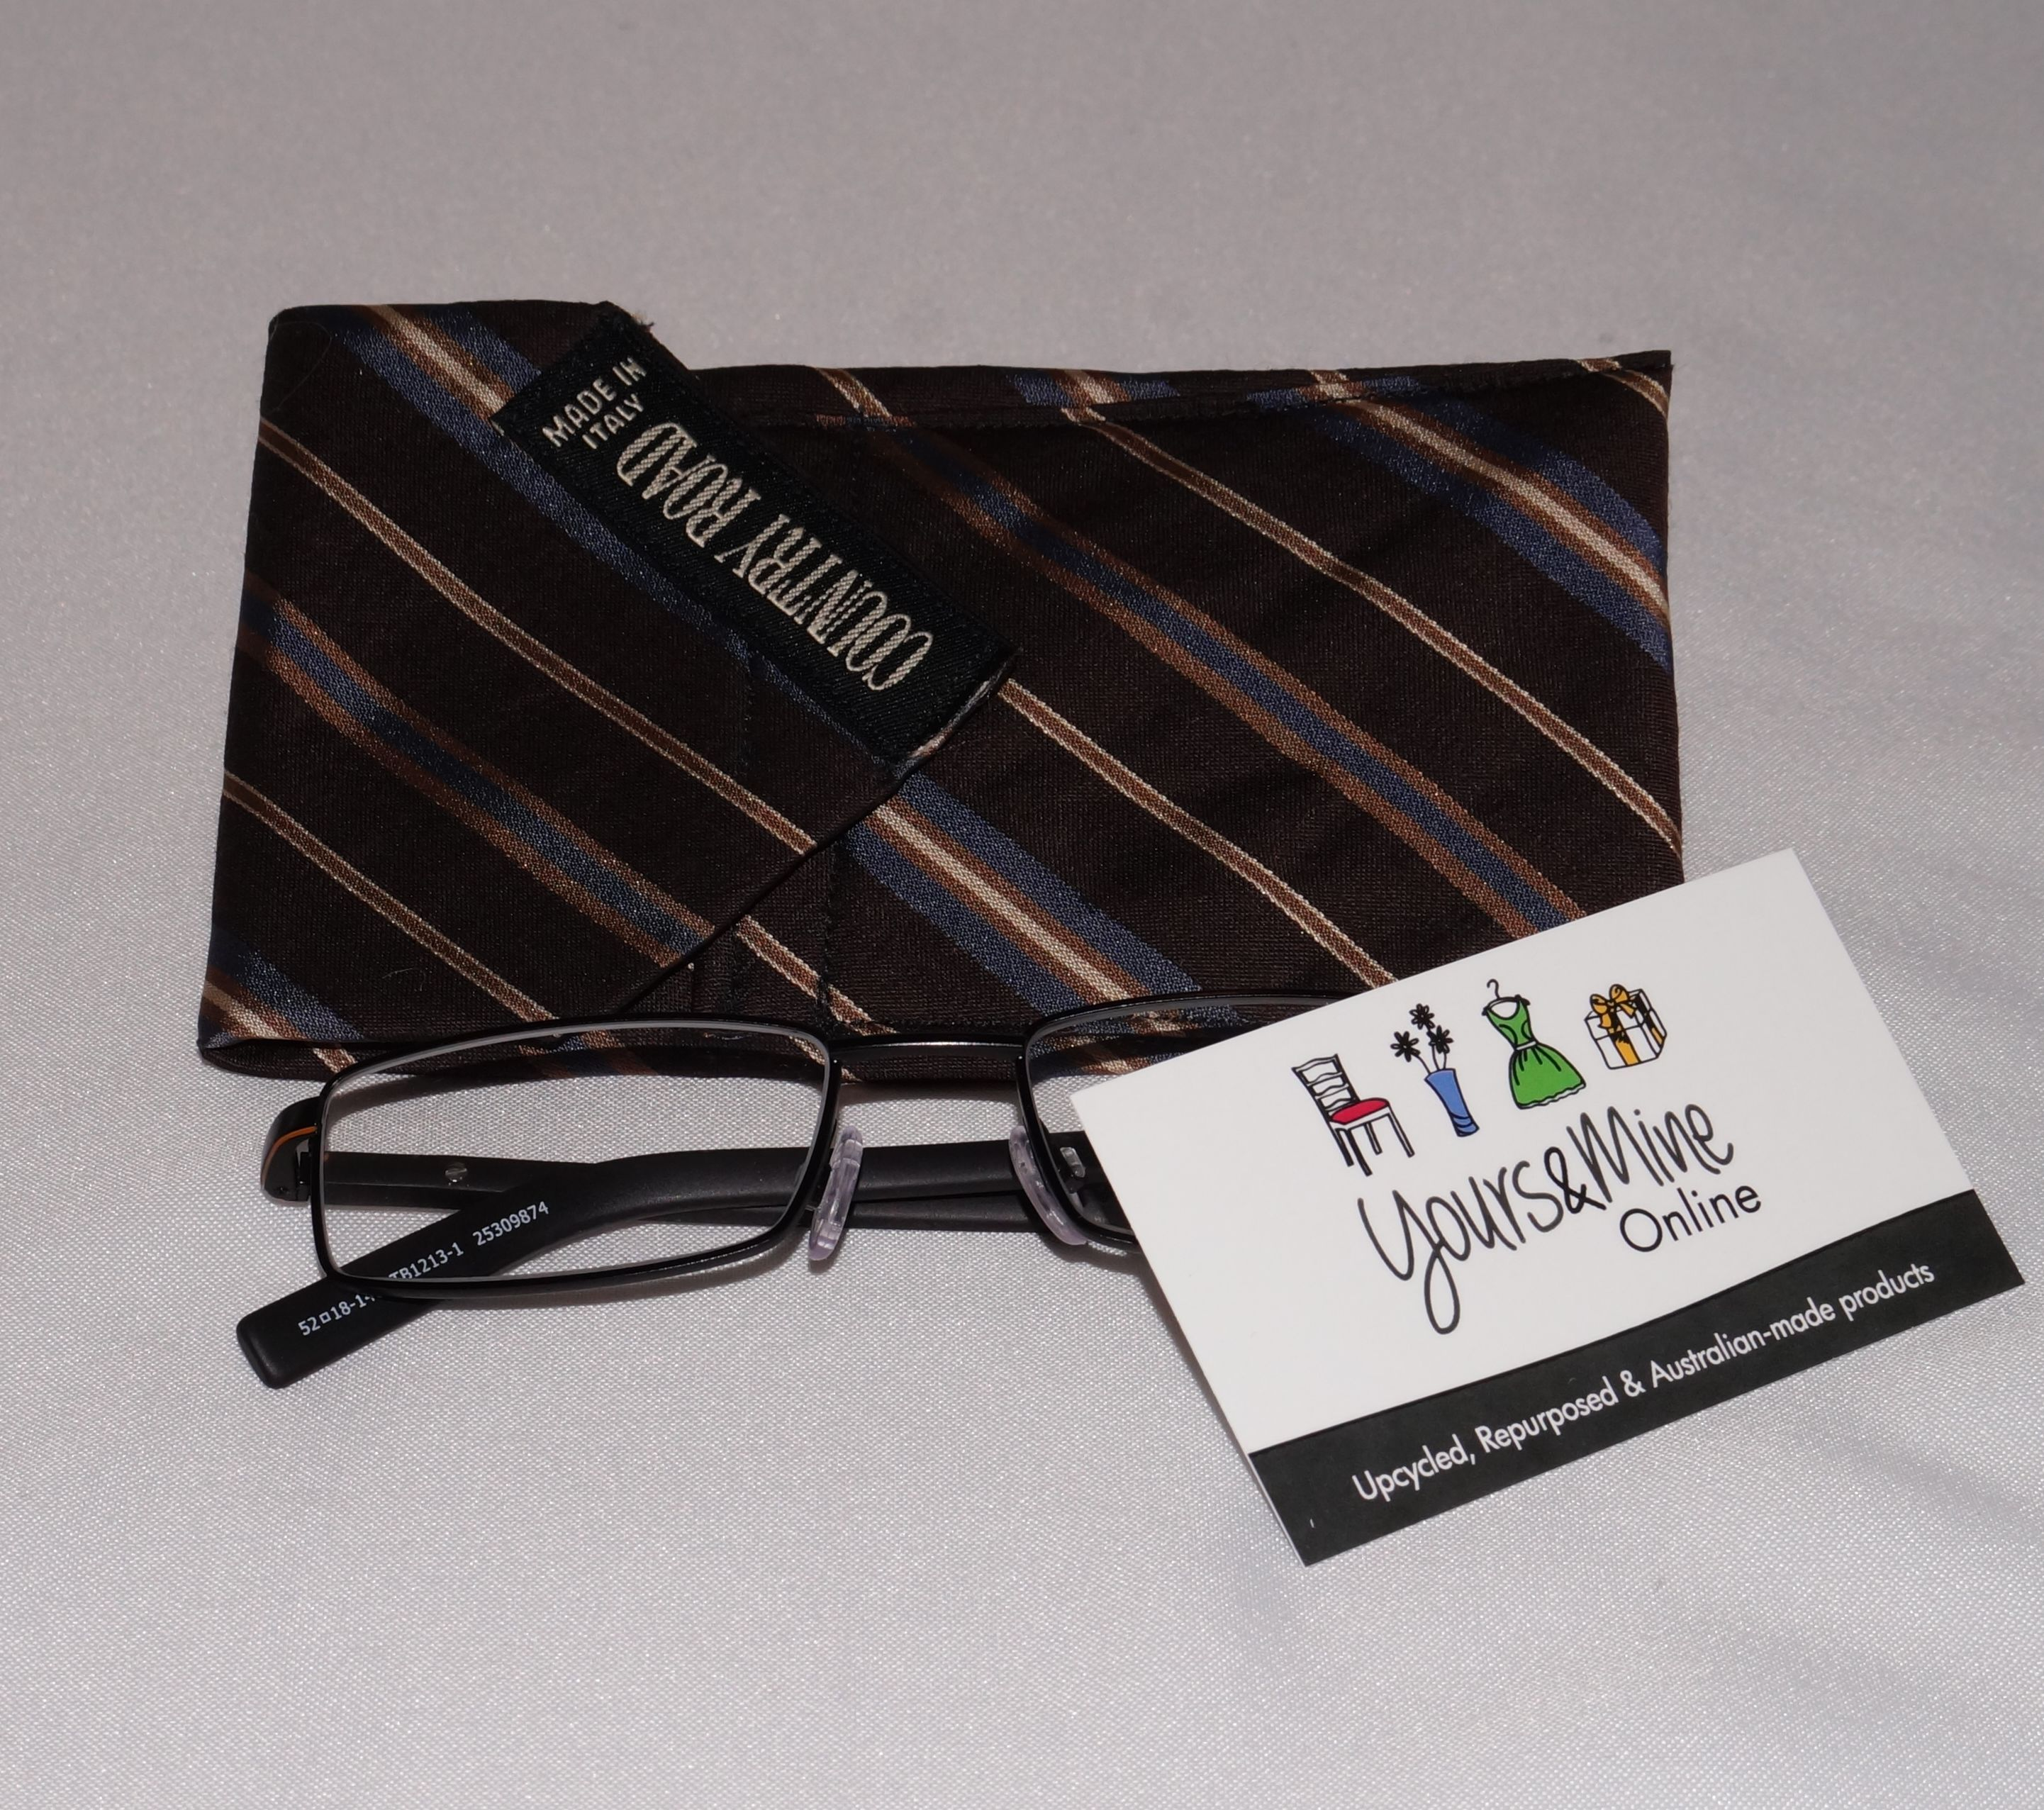 Upcycled-Tie-Glasses-Case-BrownCountryRoad_yoursandmineonline_LR.jpg